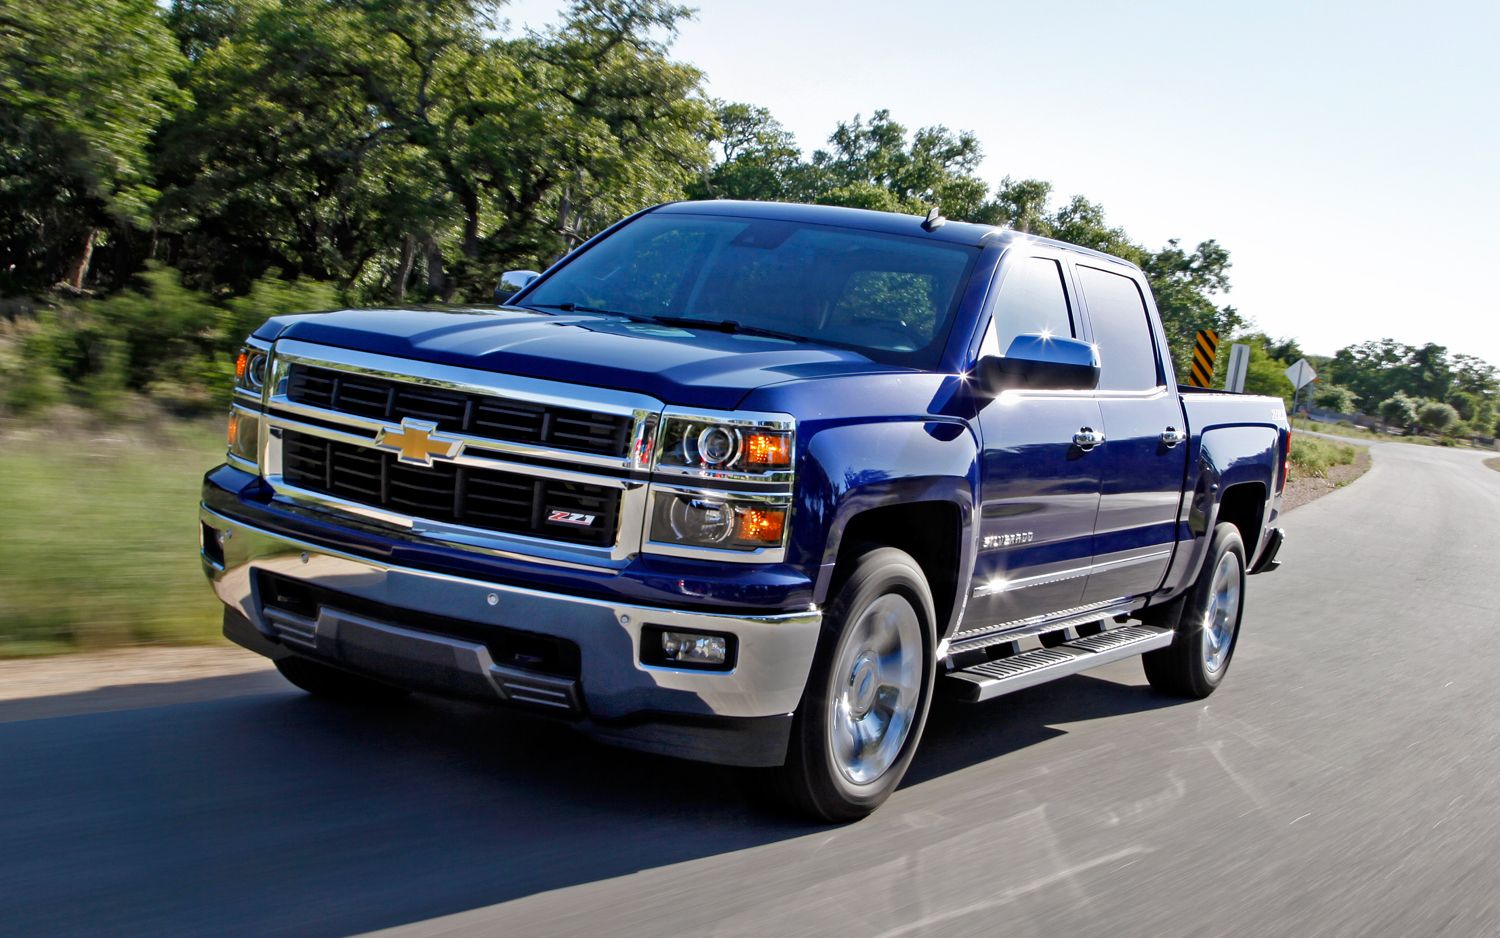 All Chevy 2014 chevy : 2014 Chevrolet Silverado First Drive - Motor Trend | Crossovers ...